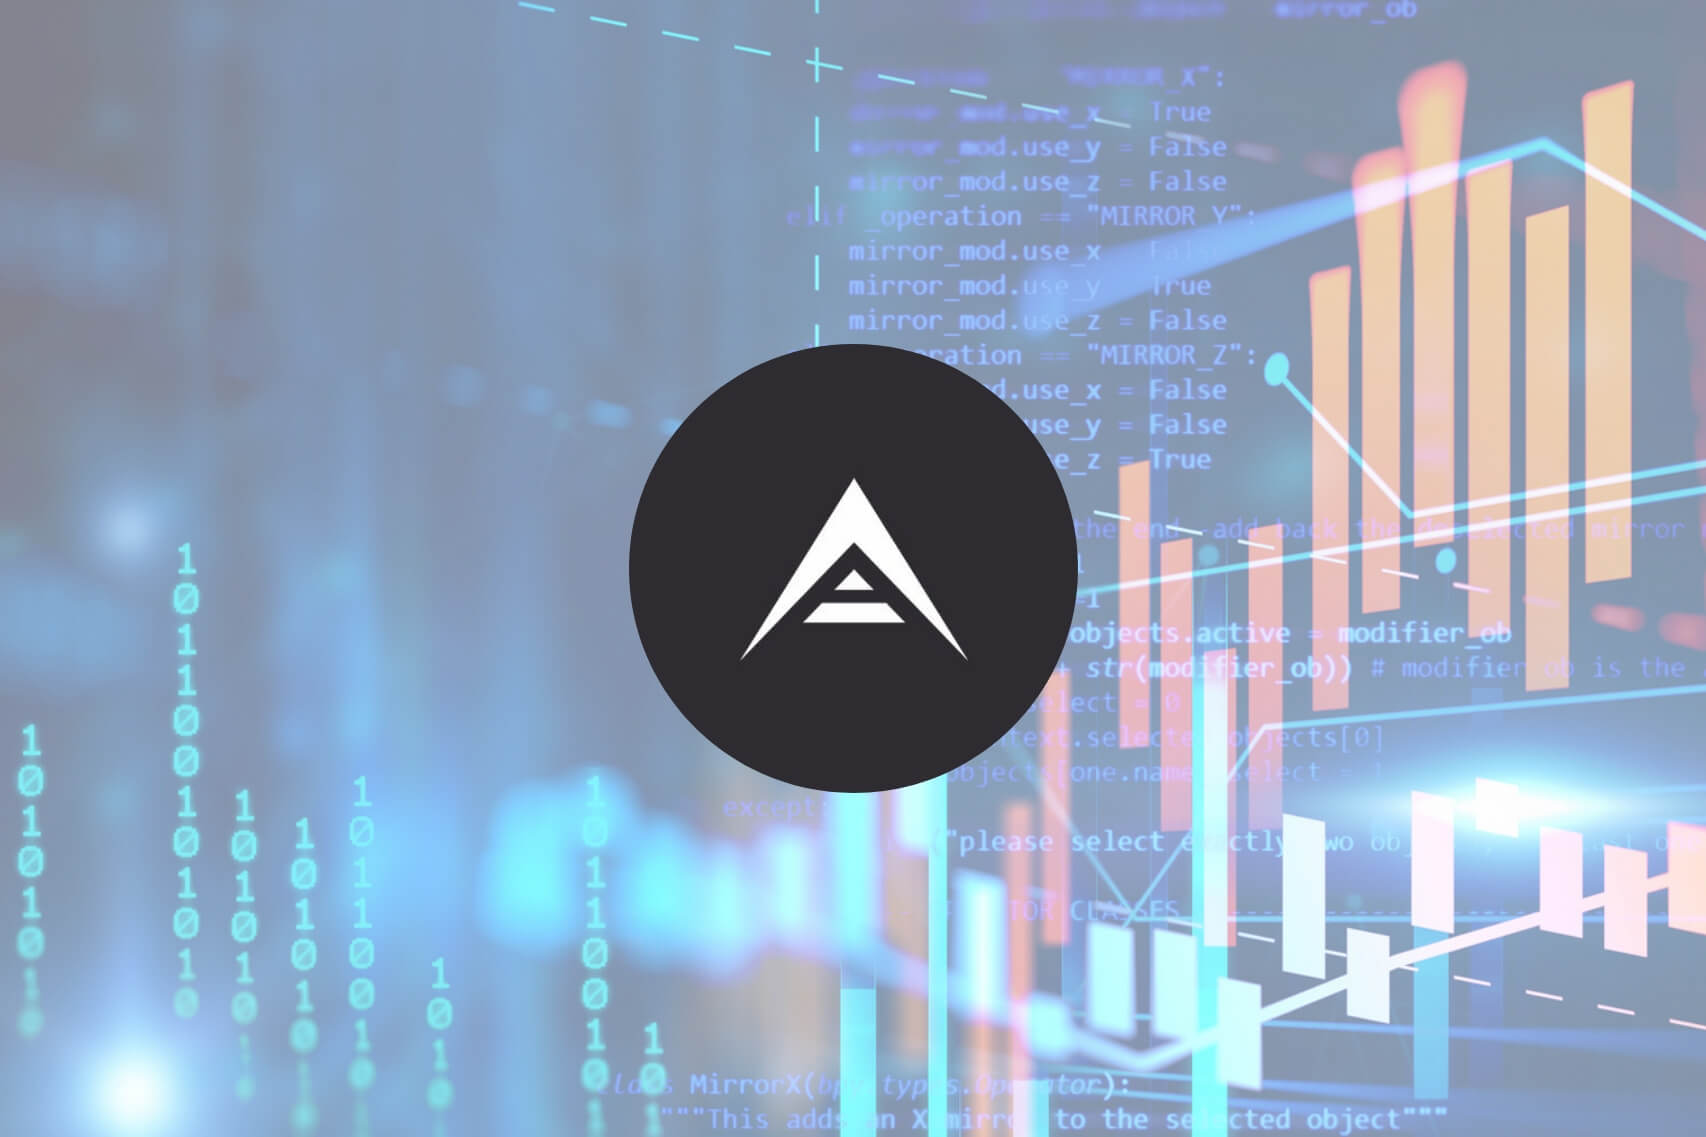 Ark Price Analysis: ARK Shows A Promising 15.79% Price Increase Over the Past 30 Days As Bulls Aim For $1.00